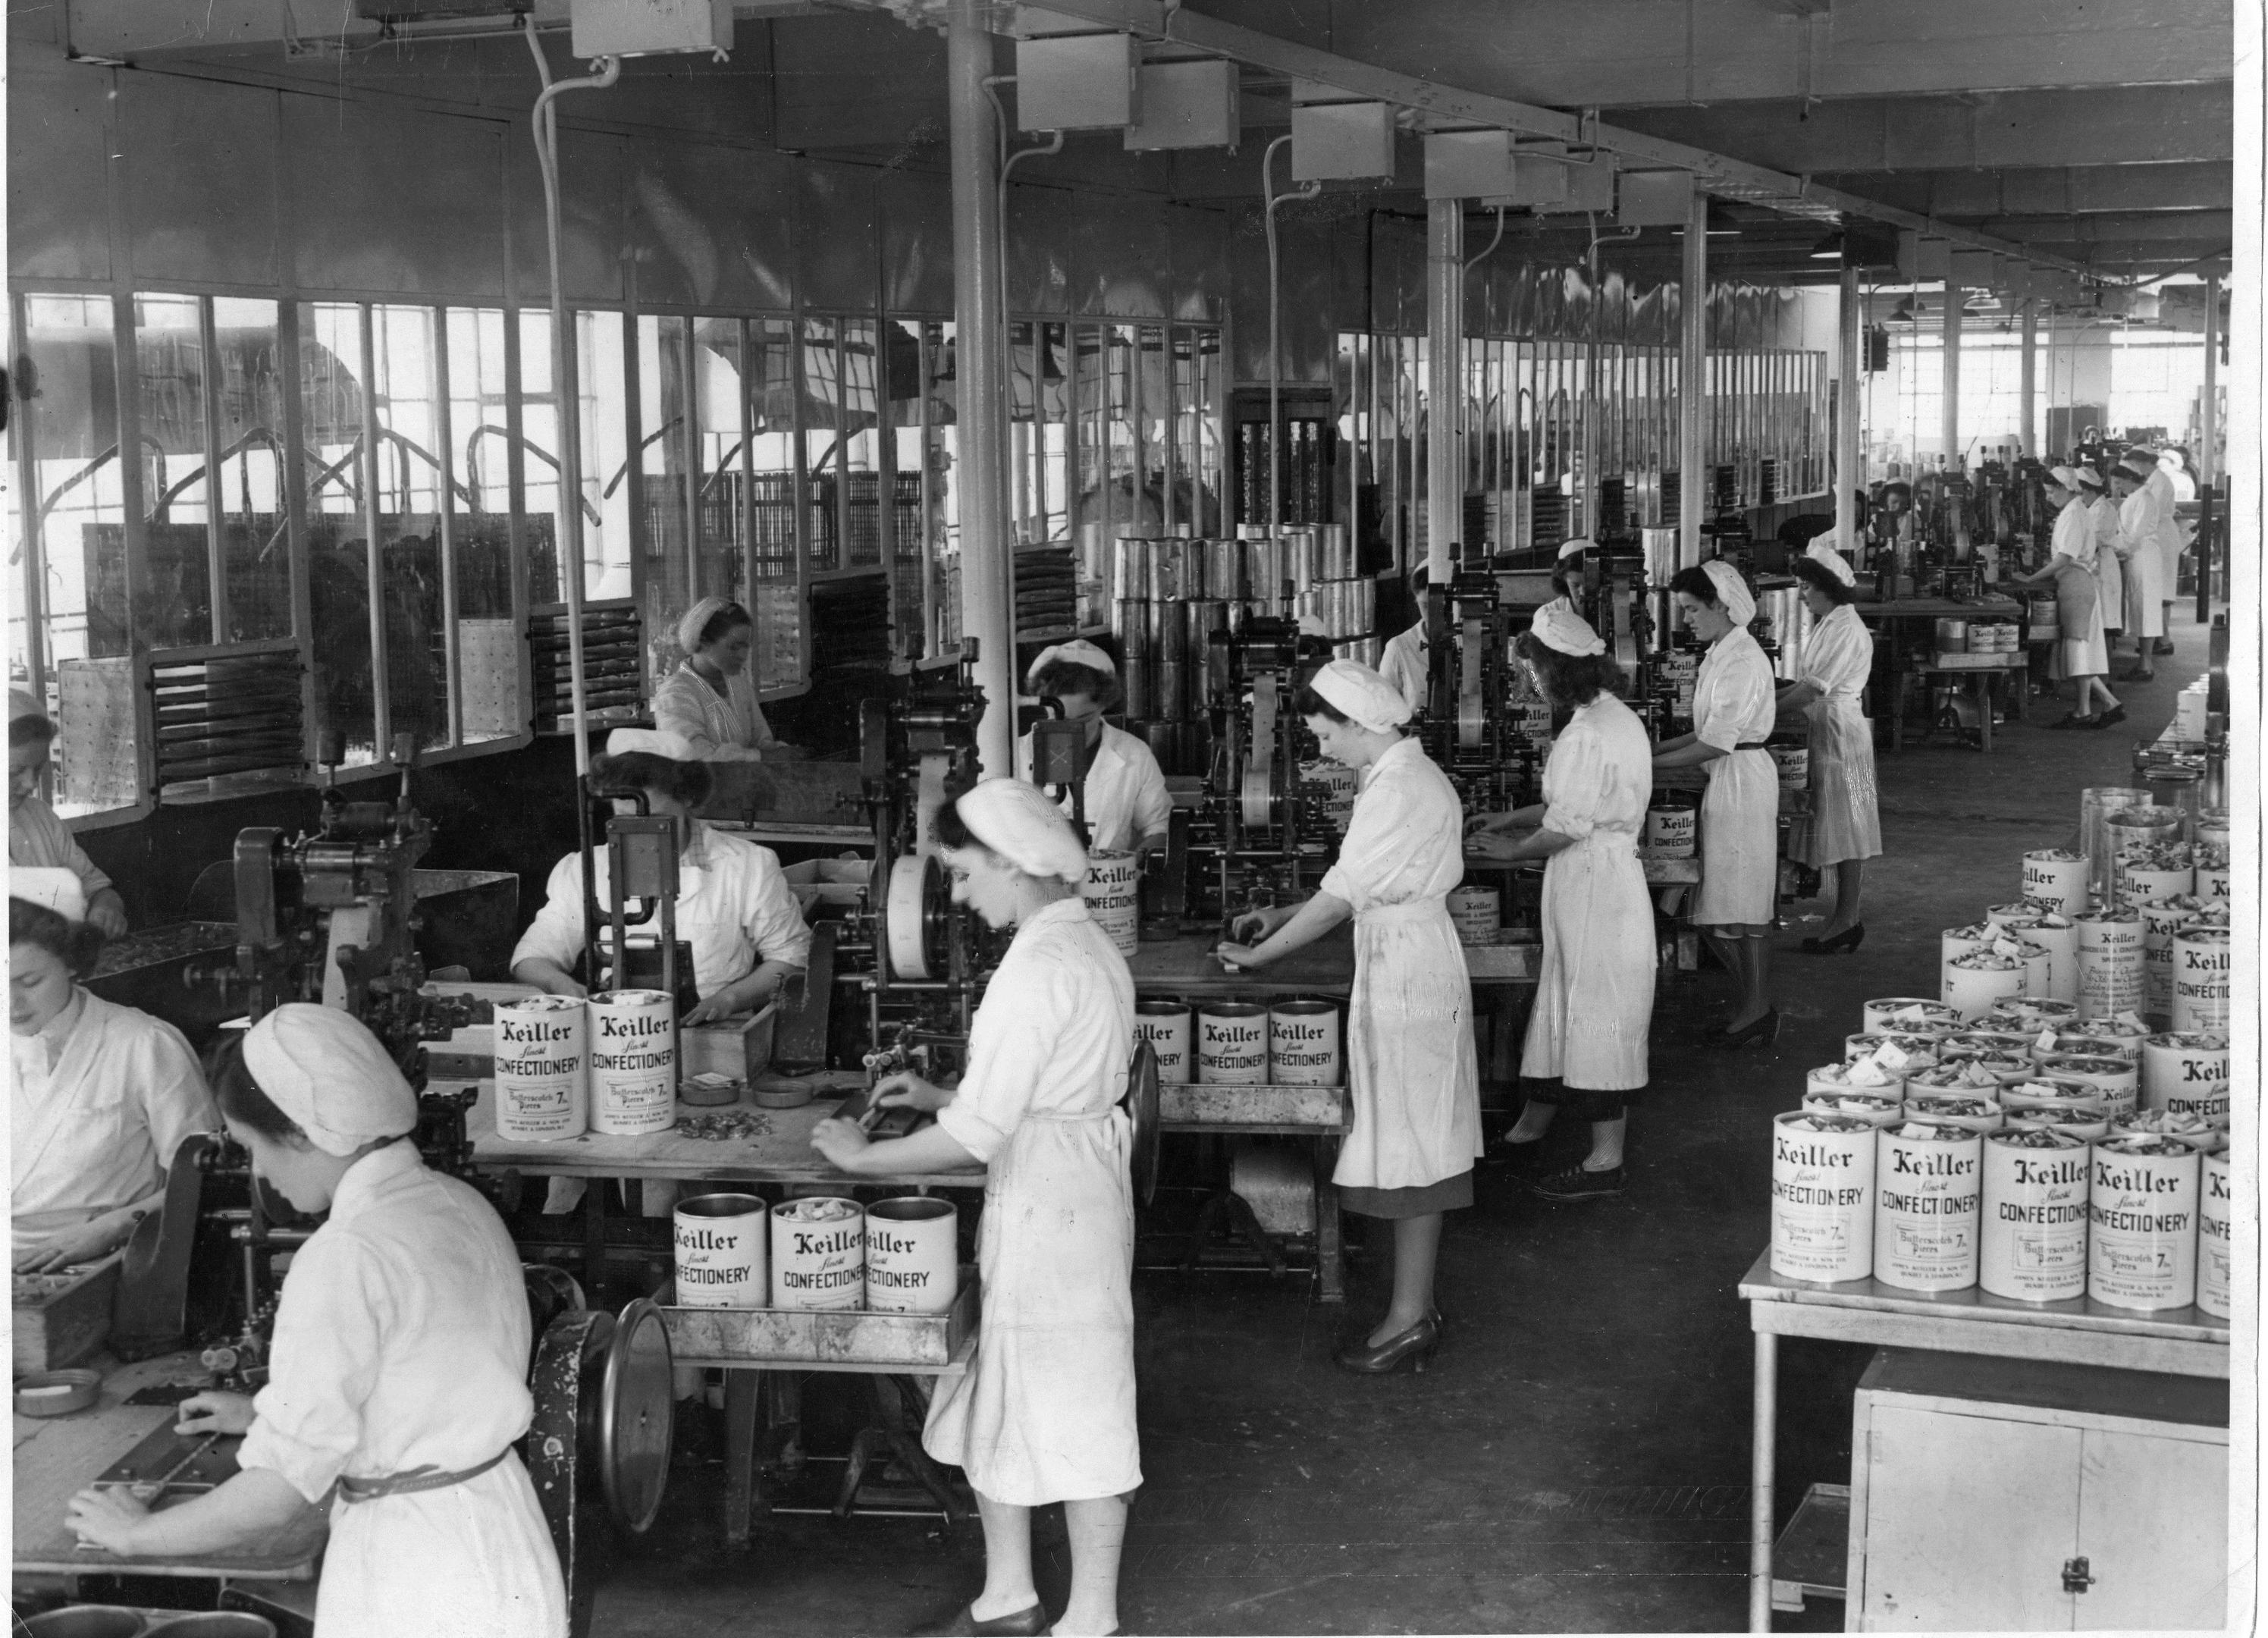 The Keiller factory in Mains Loan made preserves and sweets until it closed in the 1990s.